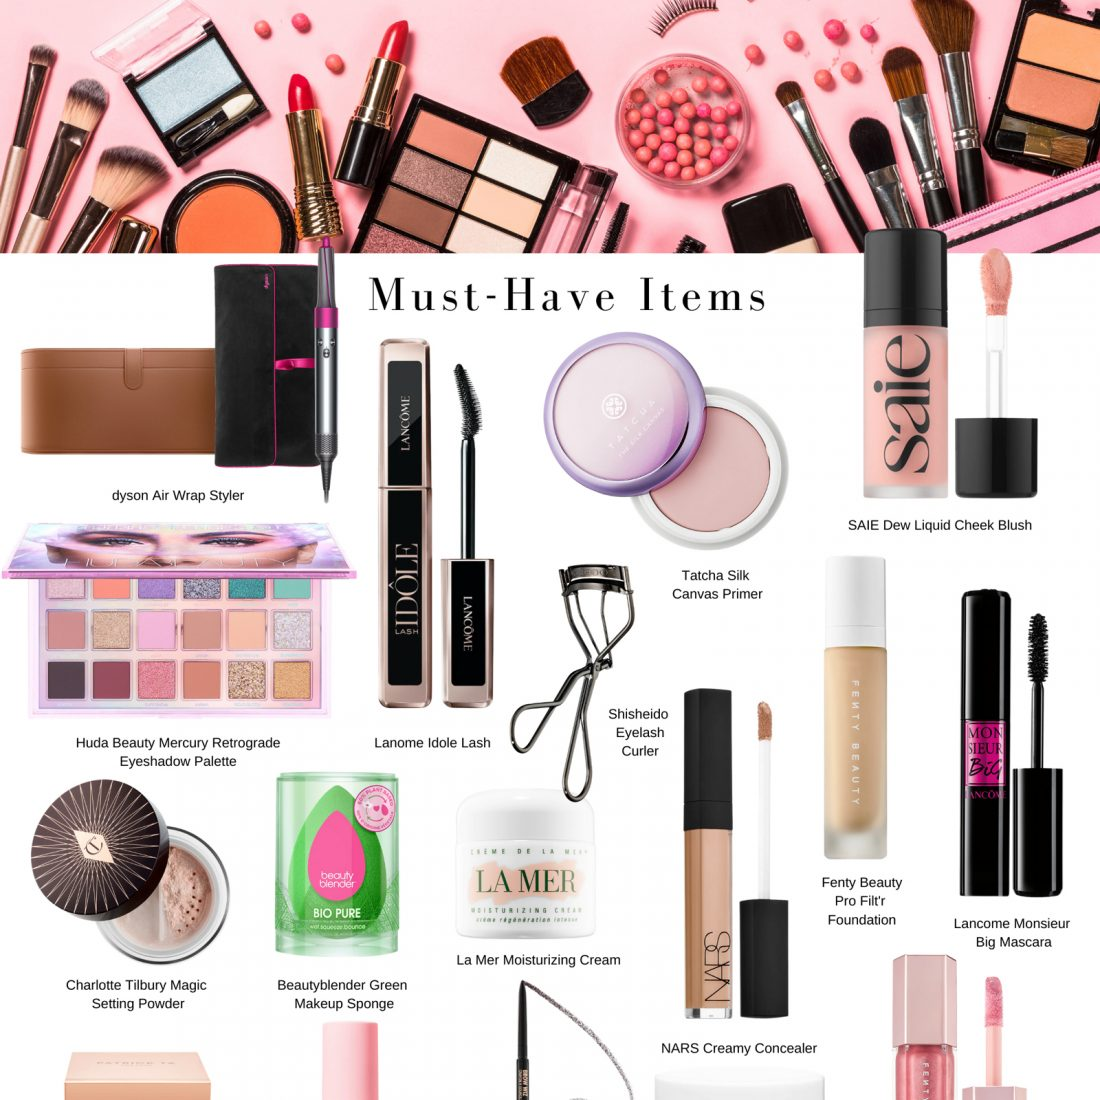 SEPHORA: Enjoy up to 70% off new markdowns + free shipping.